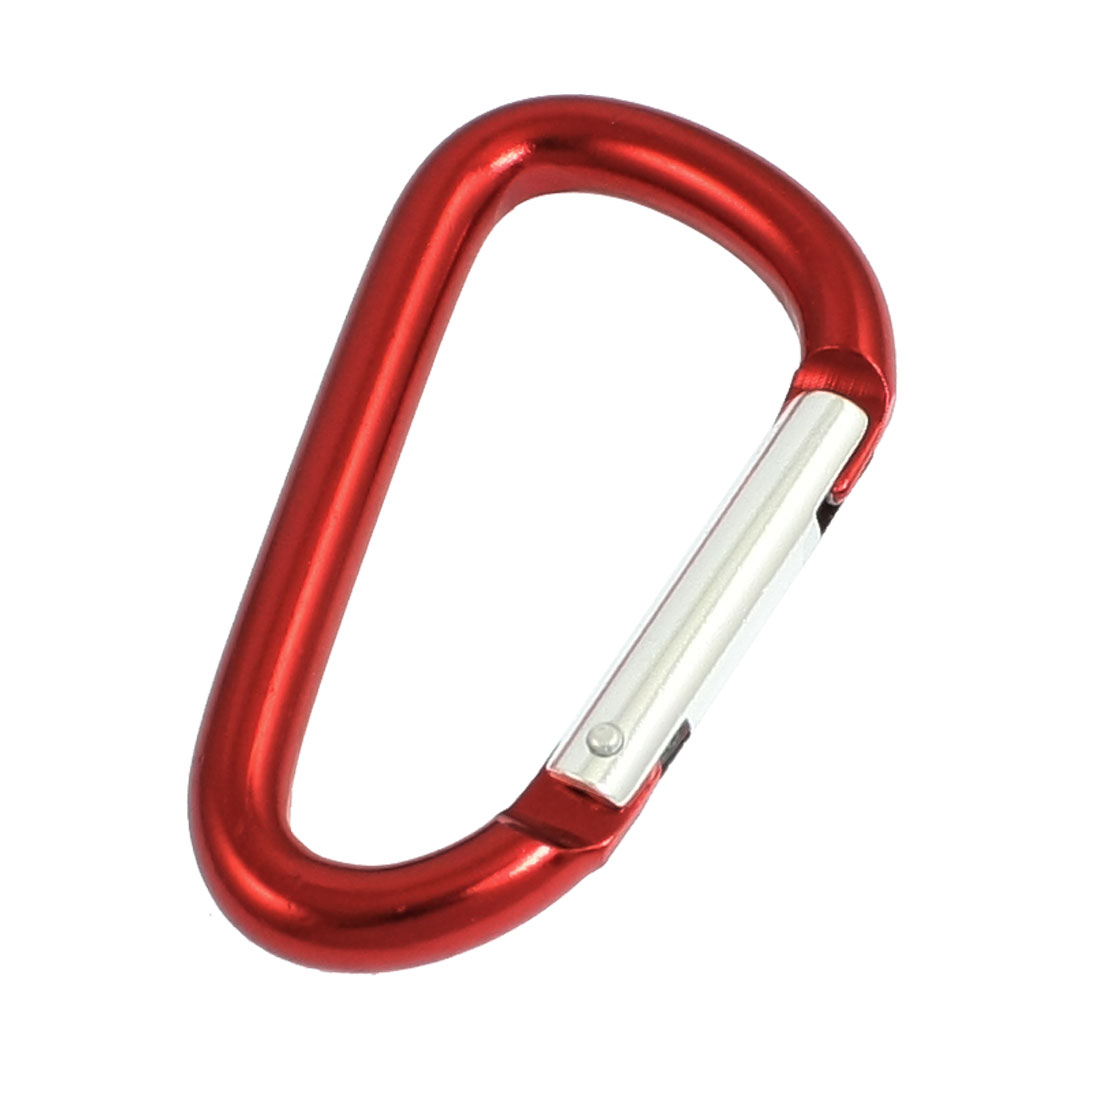 Red Silver Tone Aluminum Alloy D Shape Lockable Carabiner